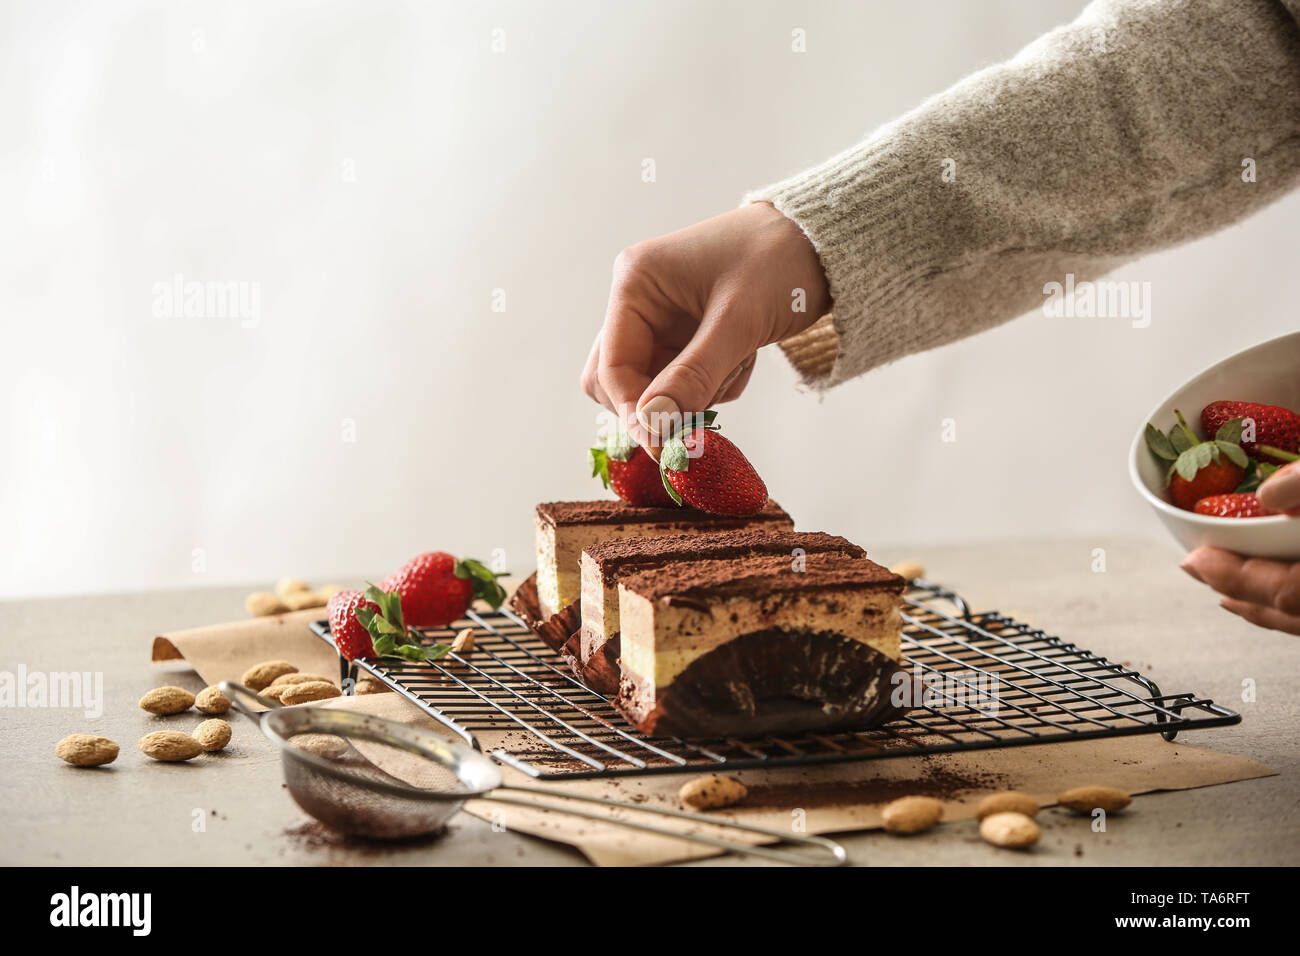 Female confectioner decorating tasty cakes at table - Stock Image